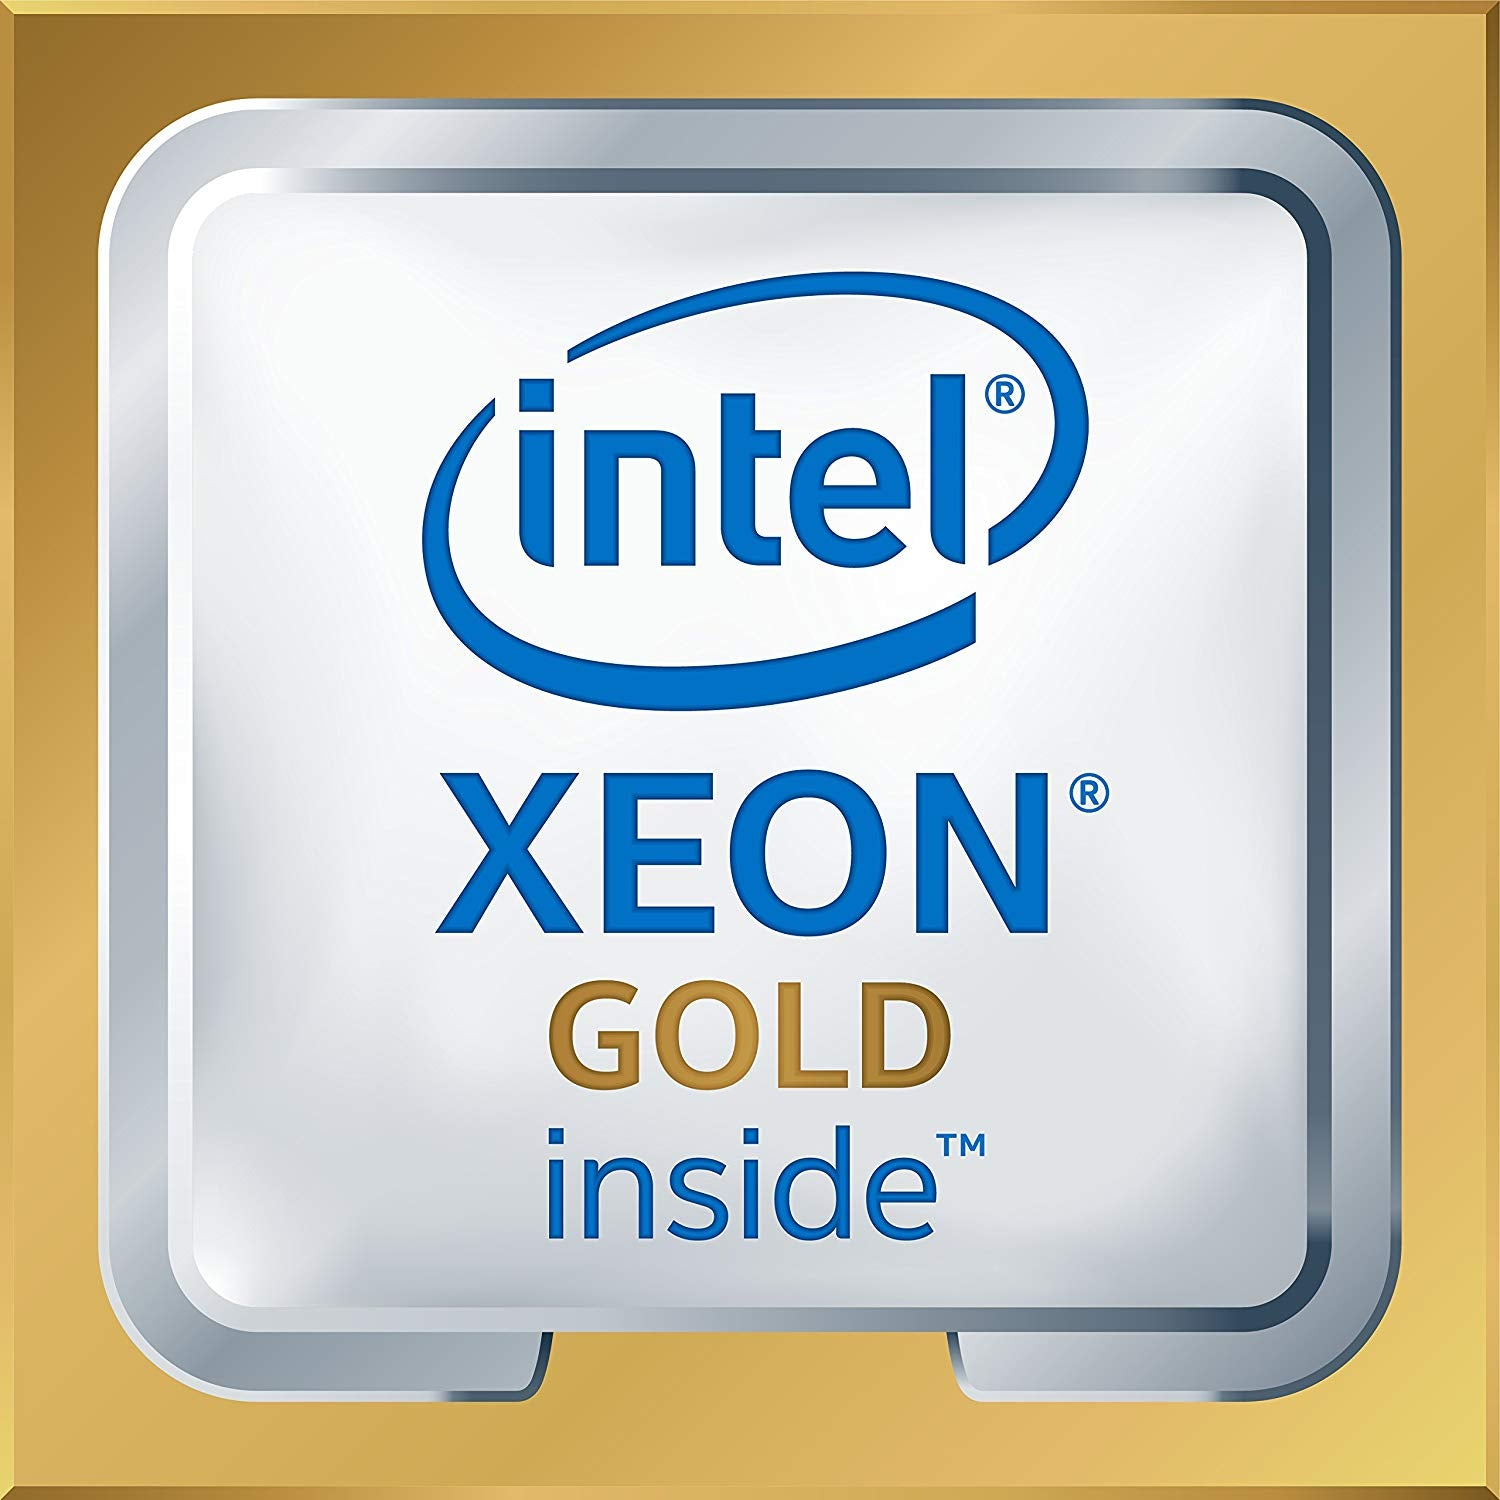 Intel Xeon Gold 6144 3.50GHz 24.75MB L3 Cache Socket 3647 Intel Xeon Octa-Core 8 Core (SR3TR) Server  Processor